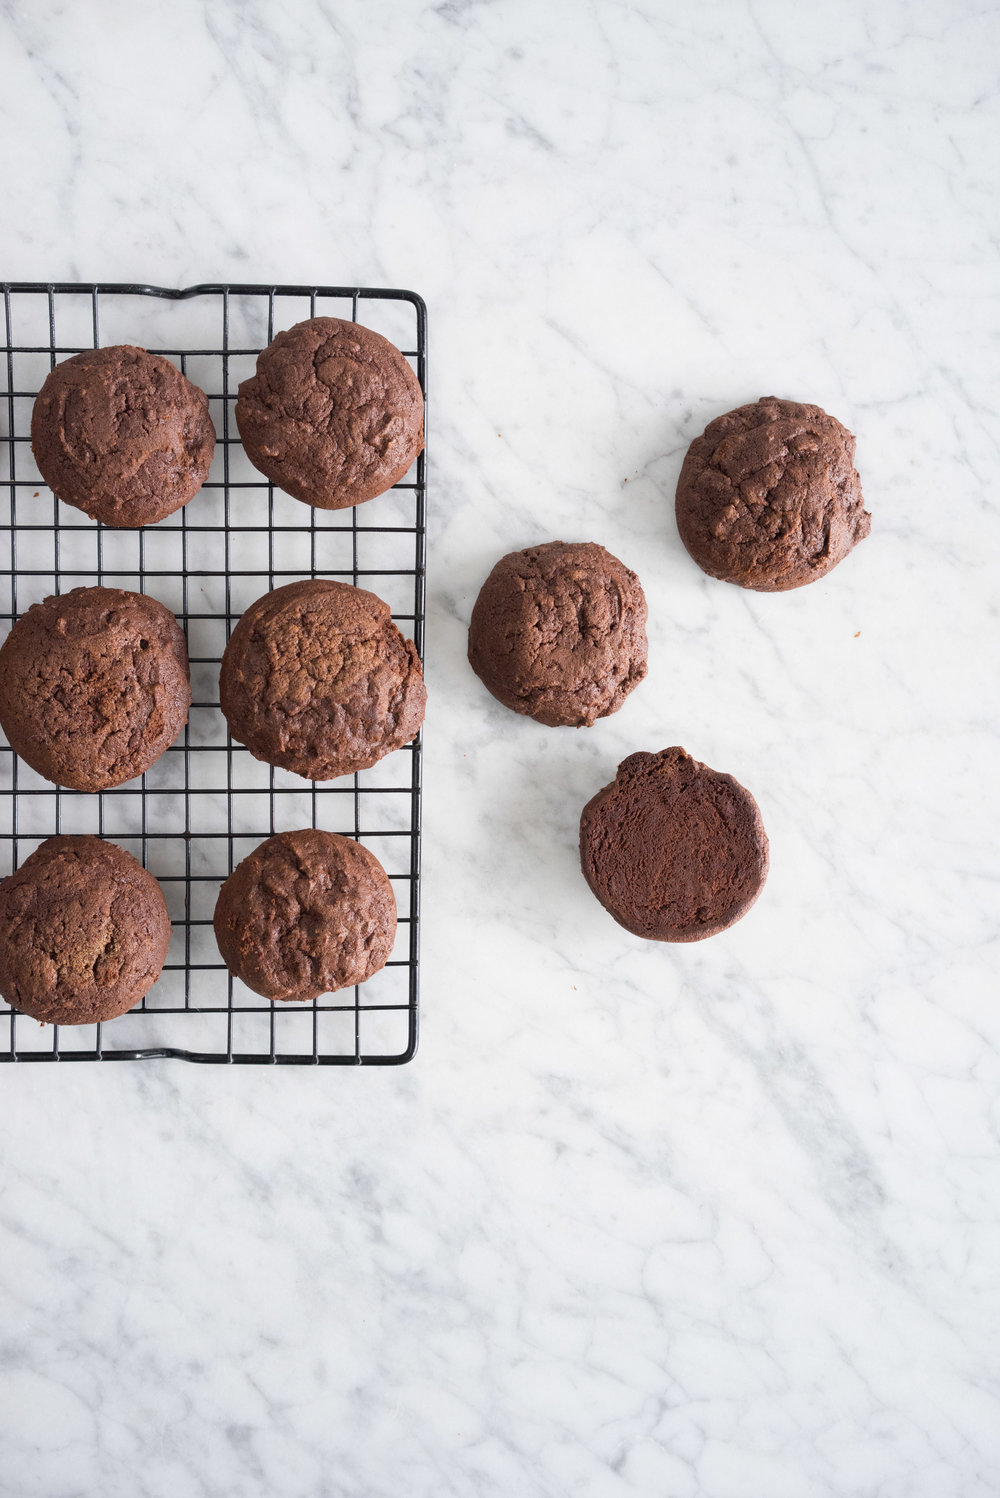 Chocolate stout cookies with coffee german buttercream